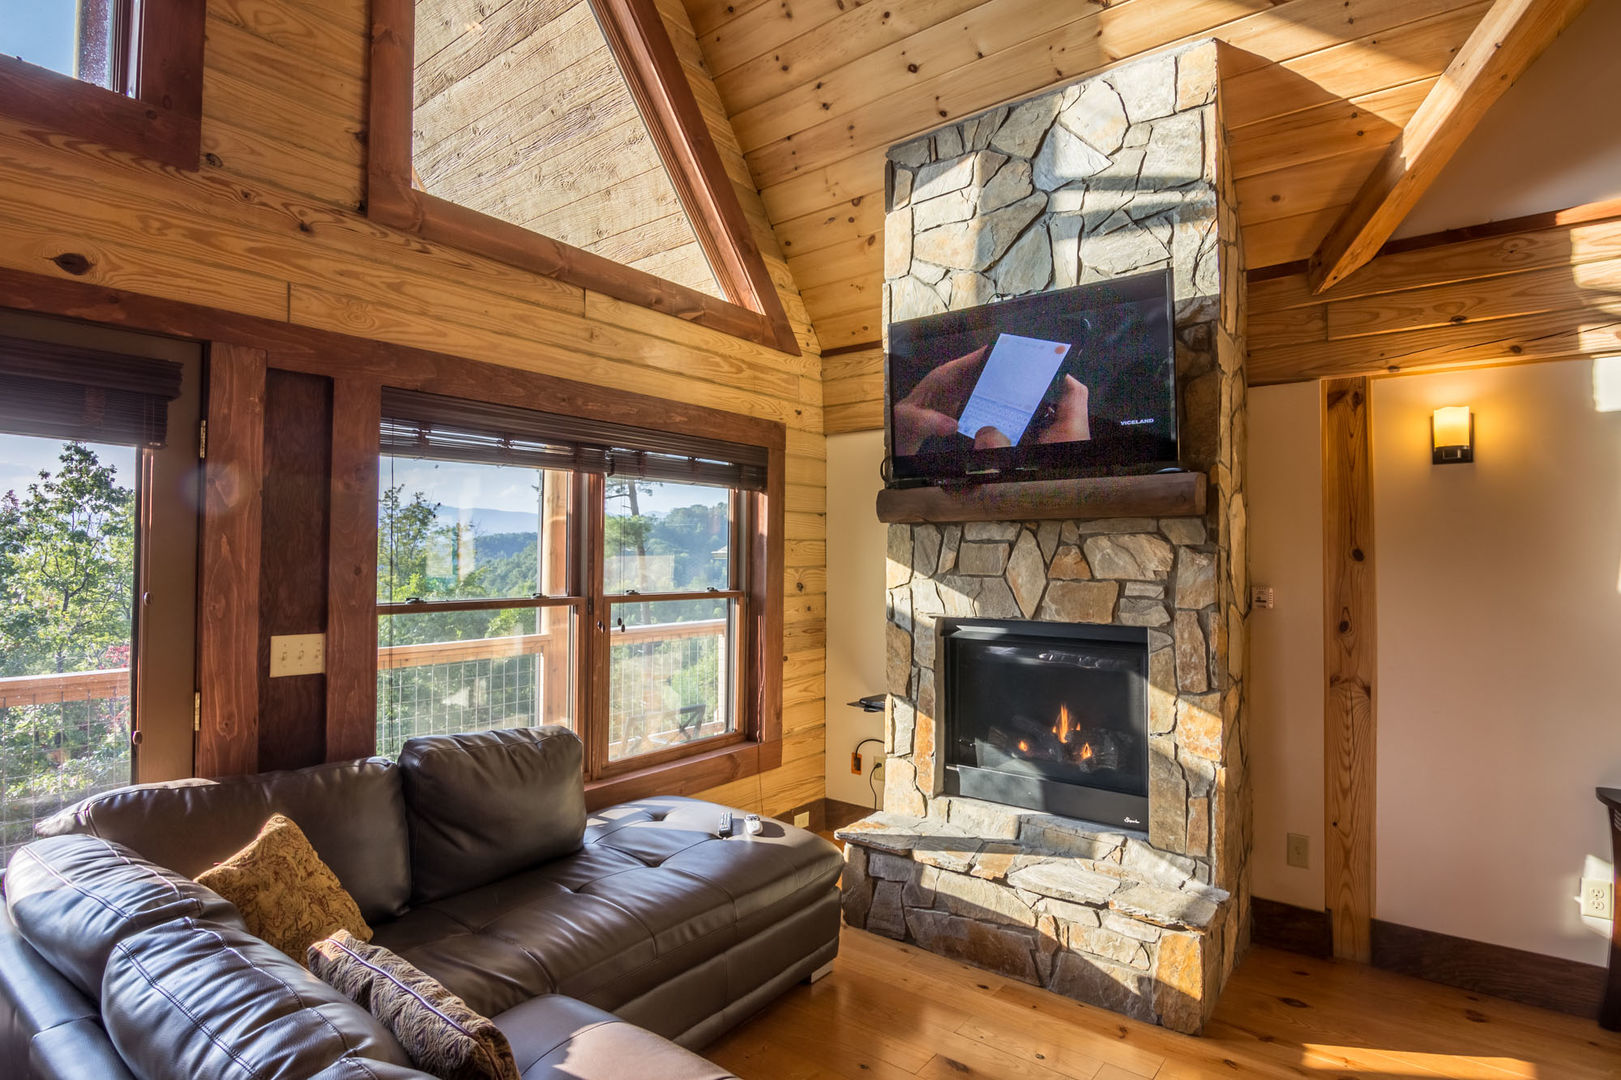 Cozy sectional leather sofa in front of the stone gas log fireplace